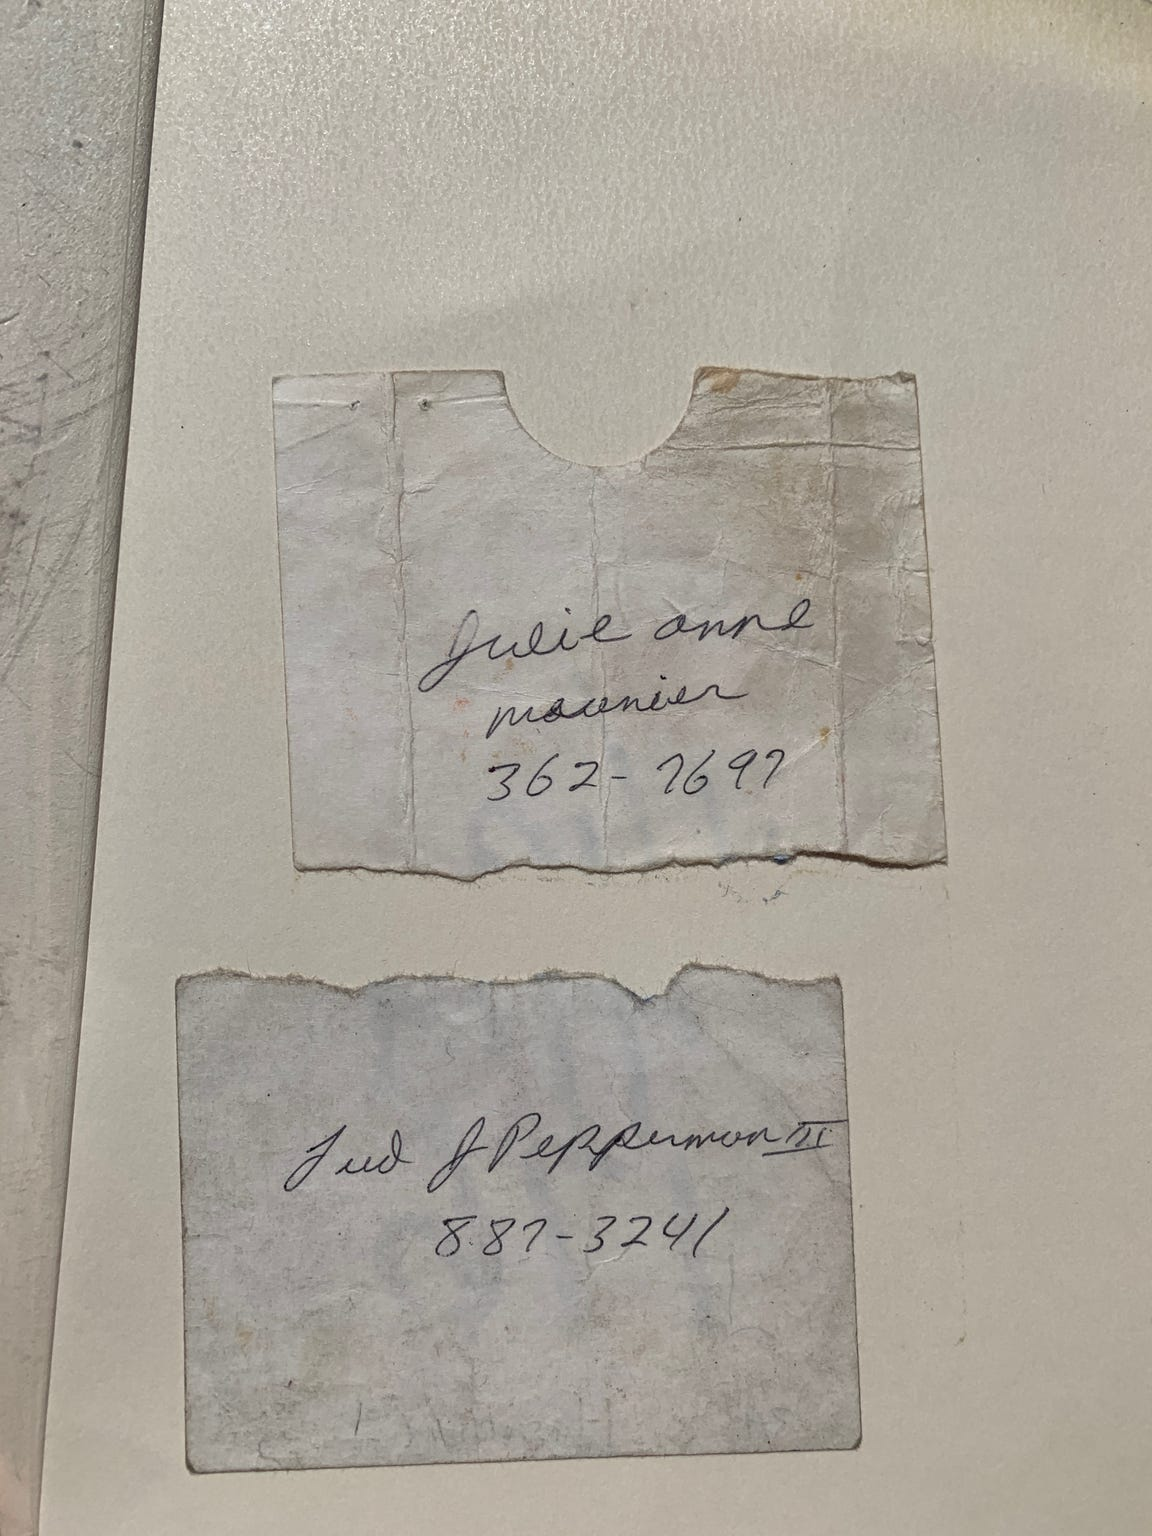 When Fred and Julie Pepperman met in 1987, they wrote their phone numbers on the blank side of a parking permit and tore it in half. Going through boxes three years later, they found out they'd both kept their halves. Now Julie keeps them in a photo album.